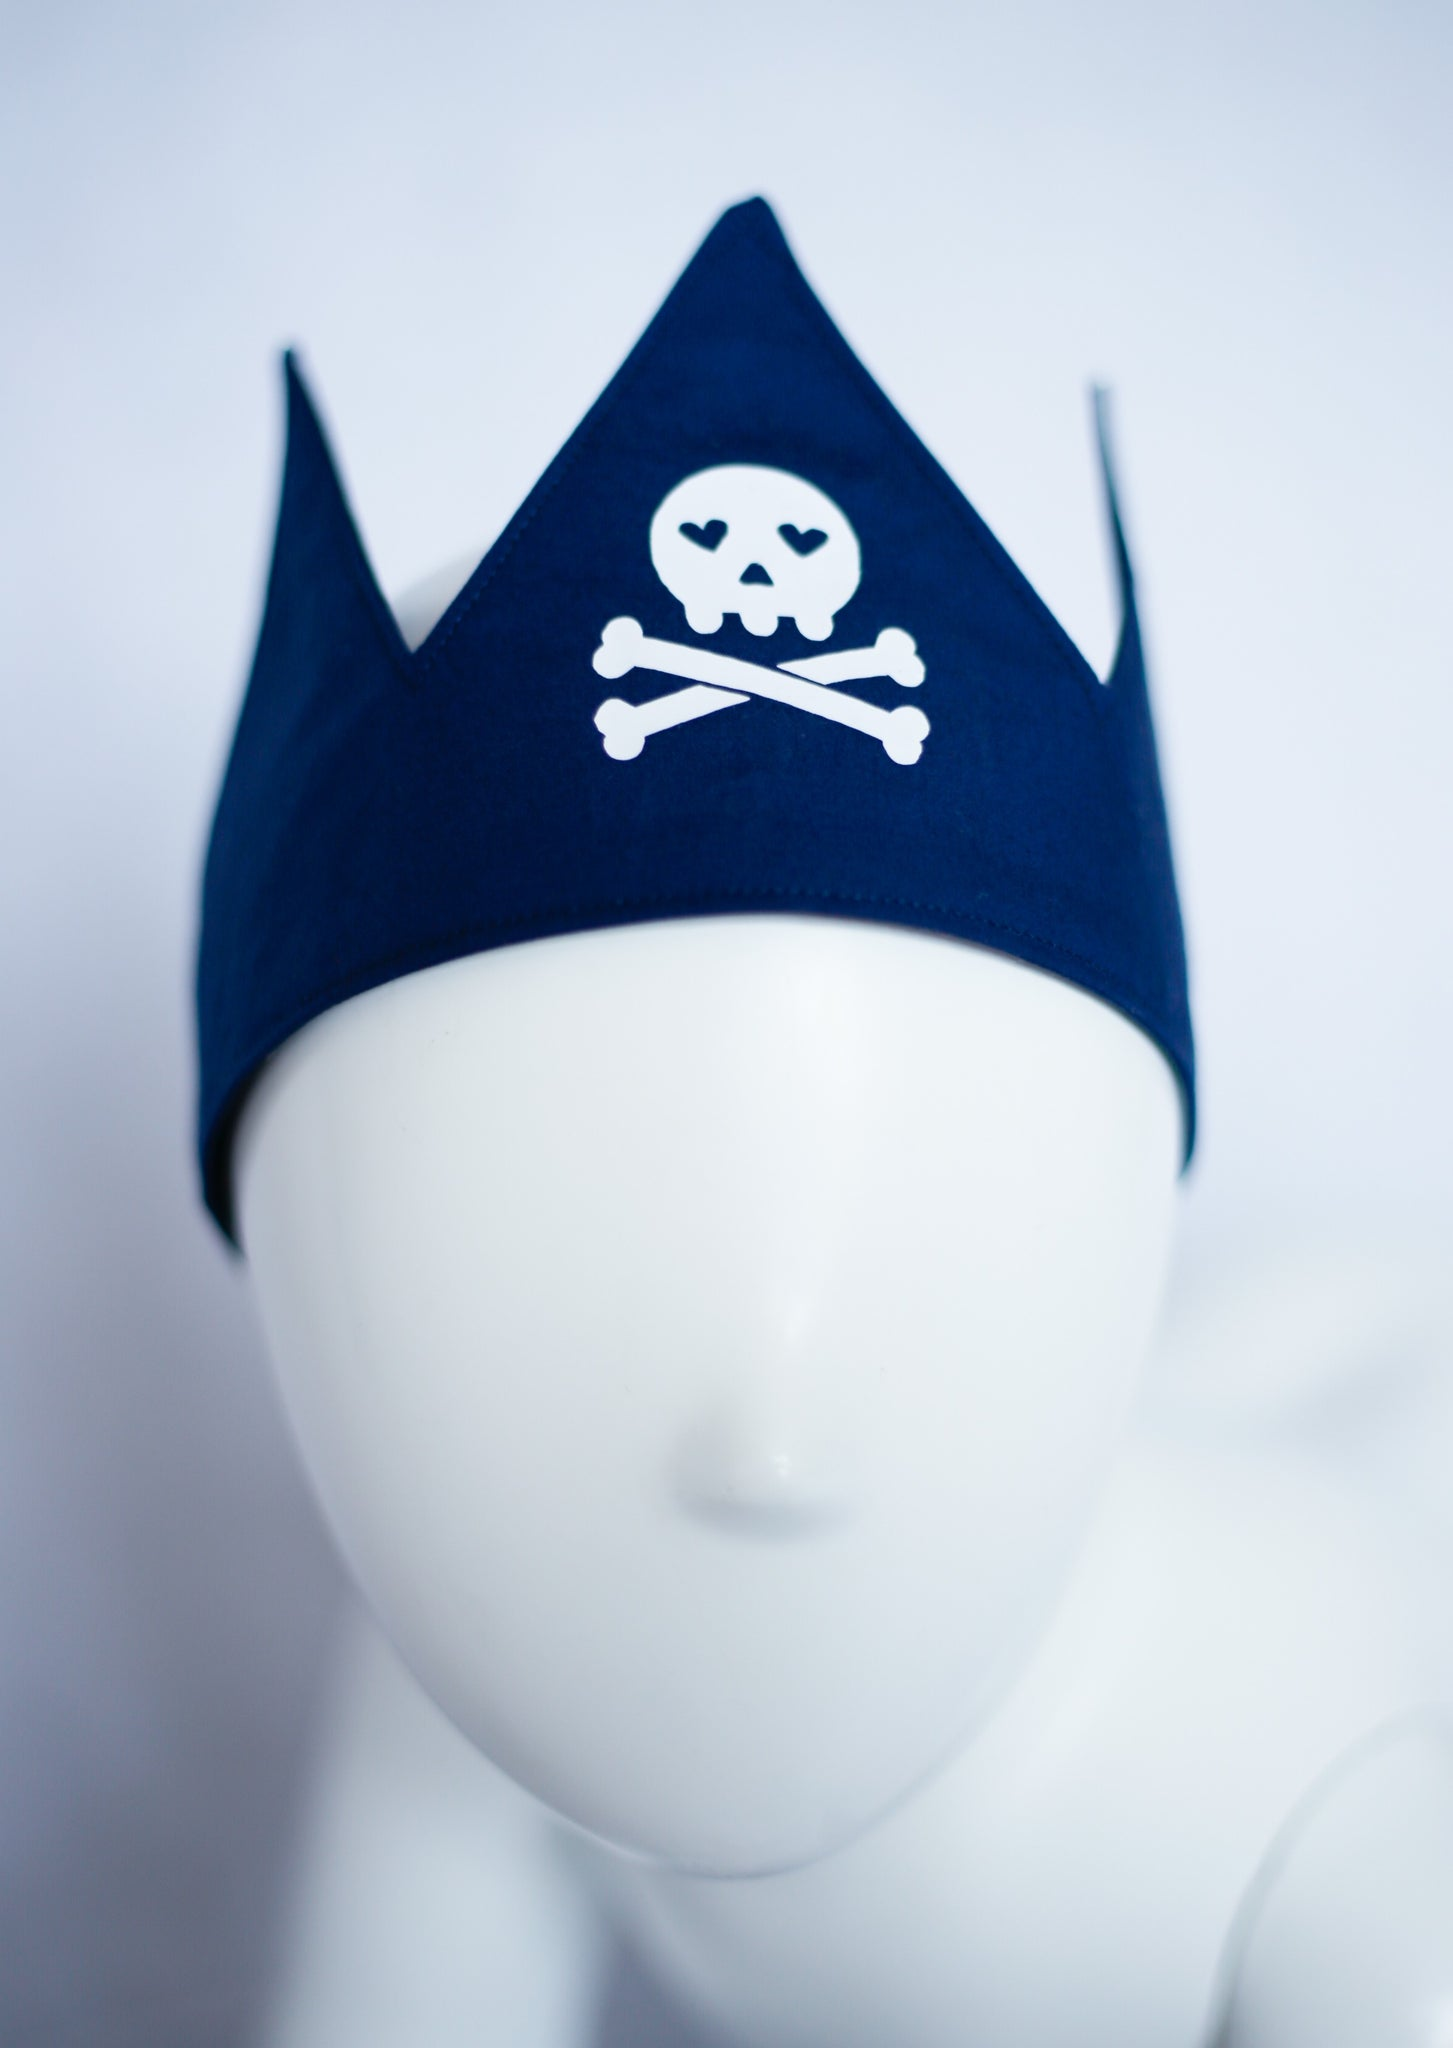 Playtime Imagination Crown (Pirate)